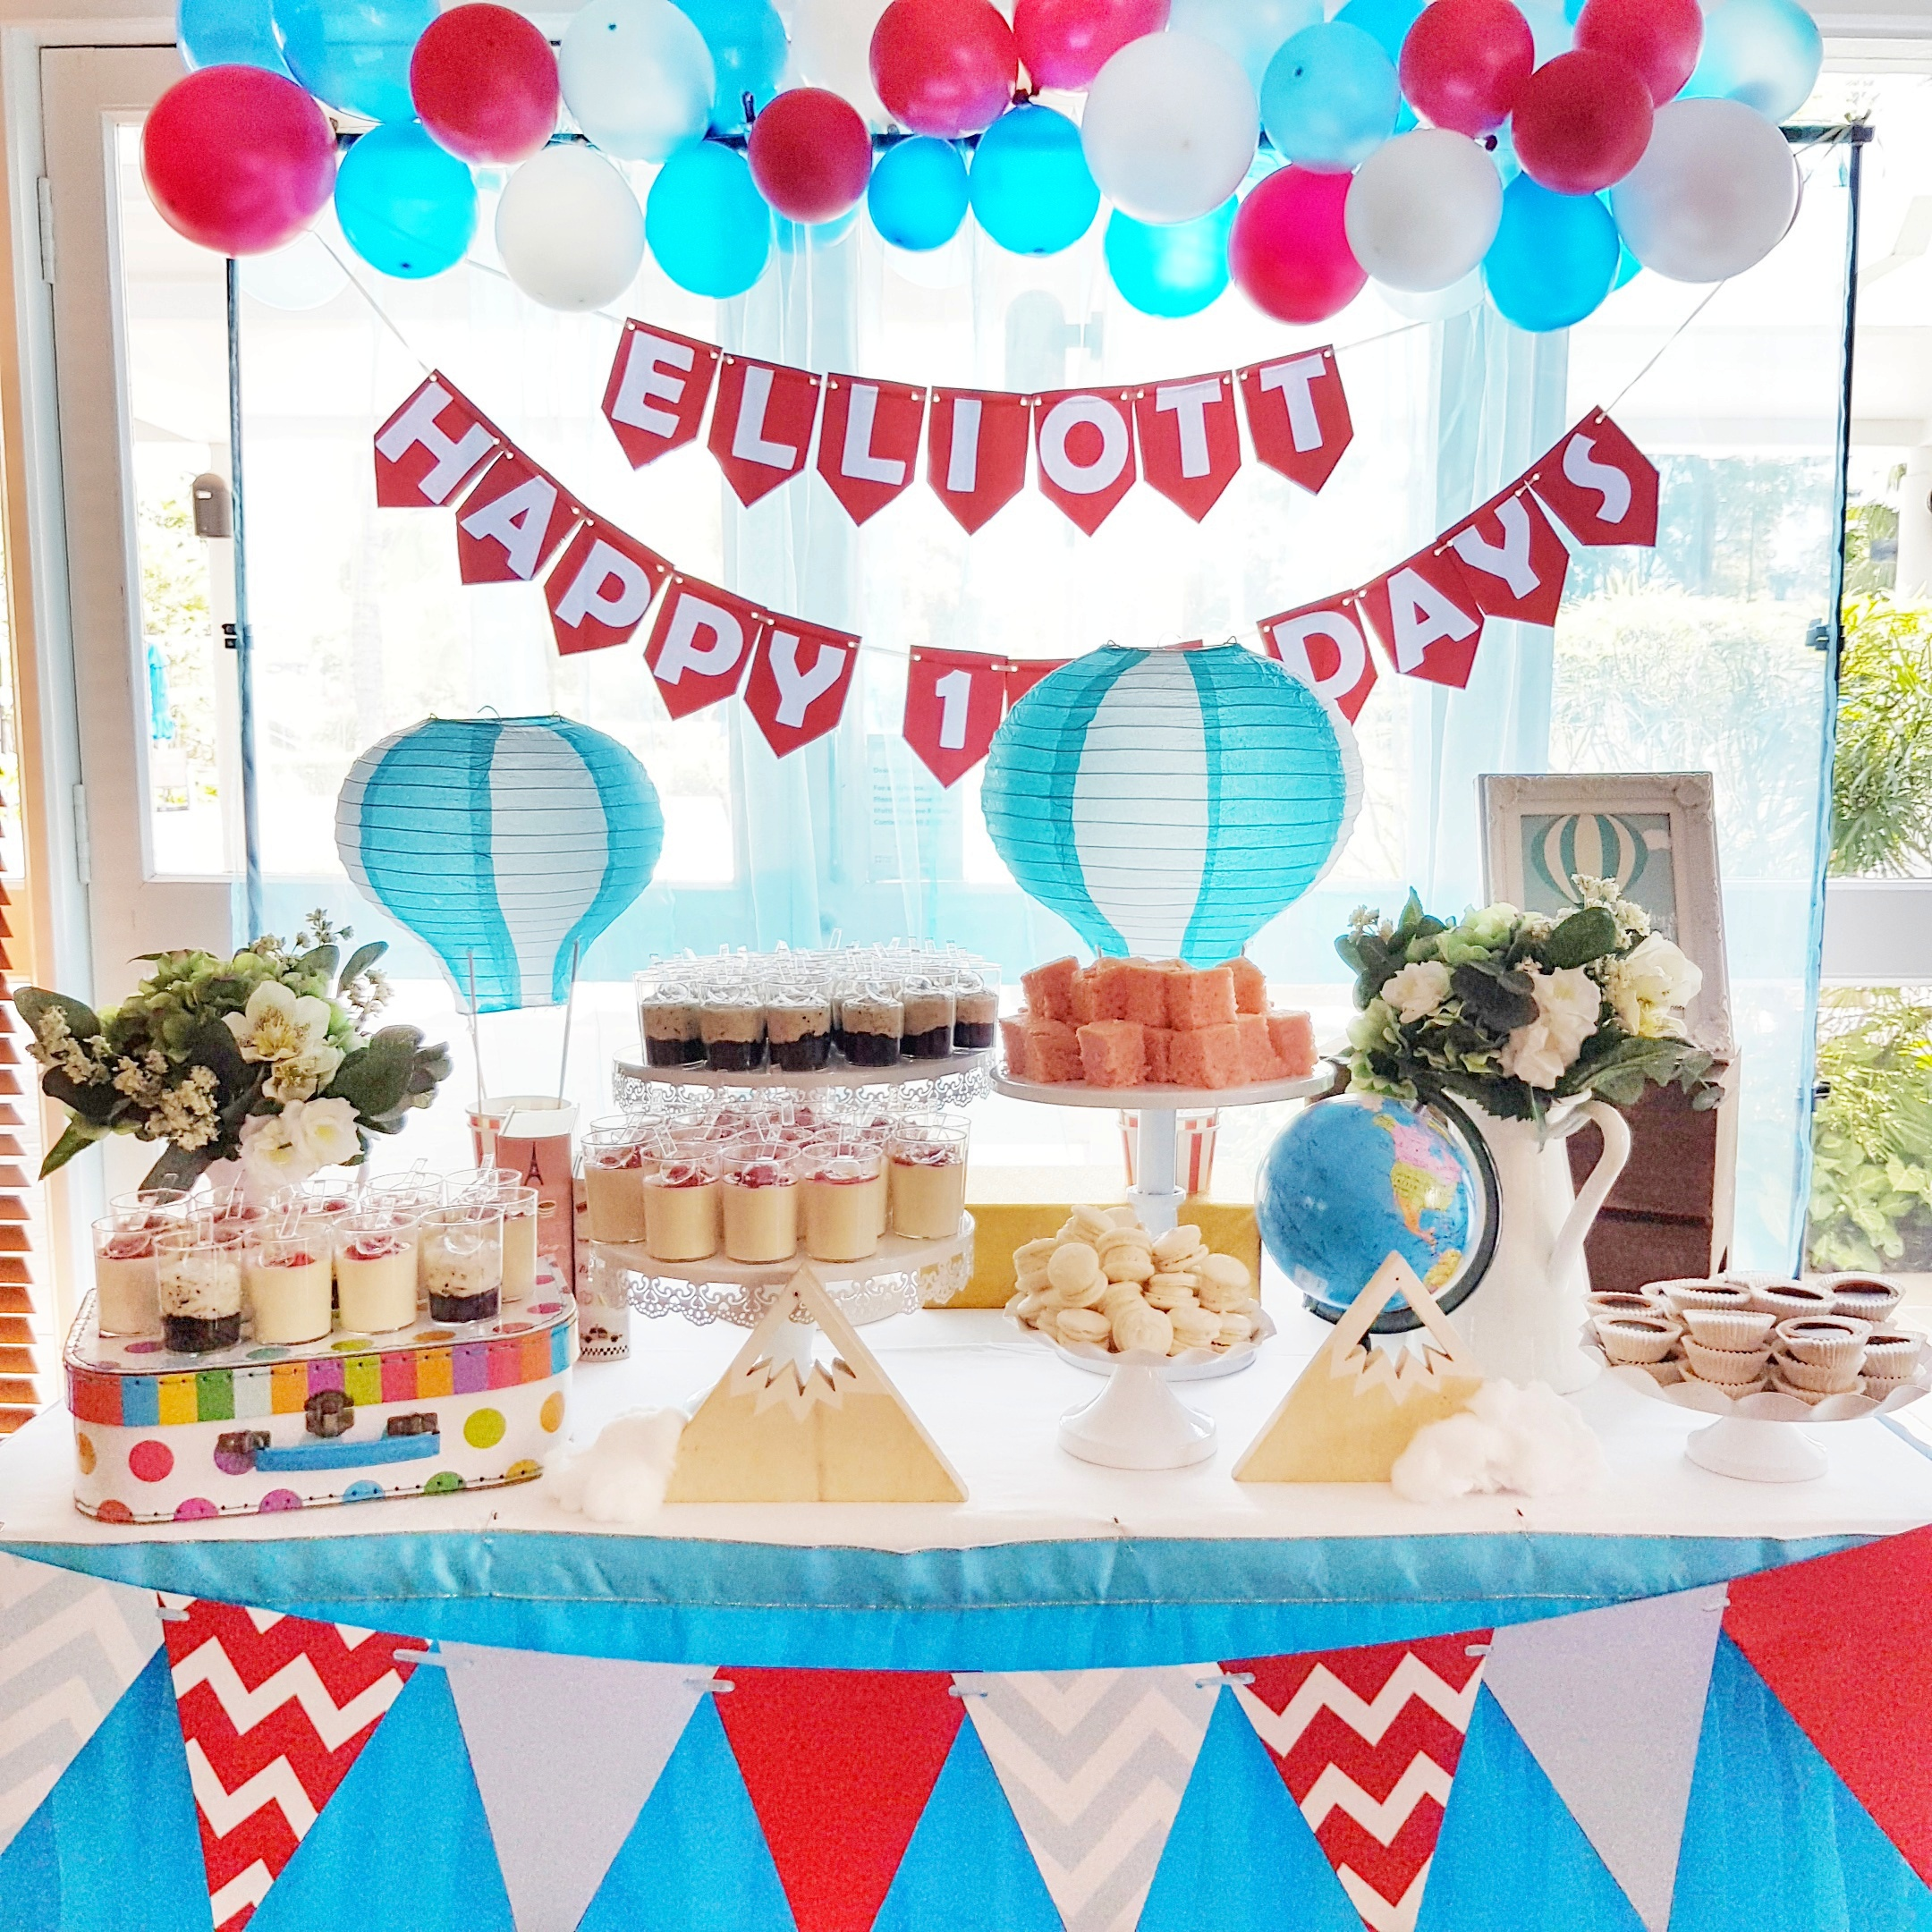 Hot Air Balloon Dessert Table by The Baking Experiment